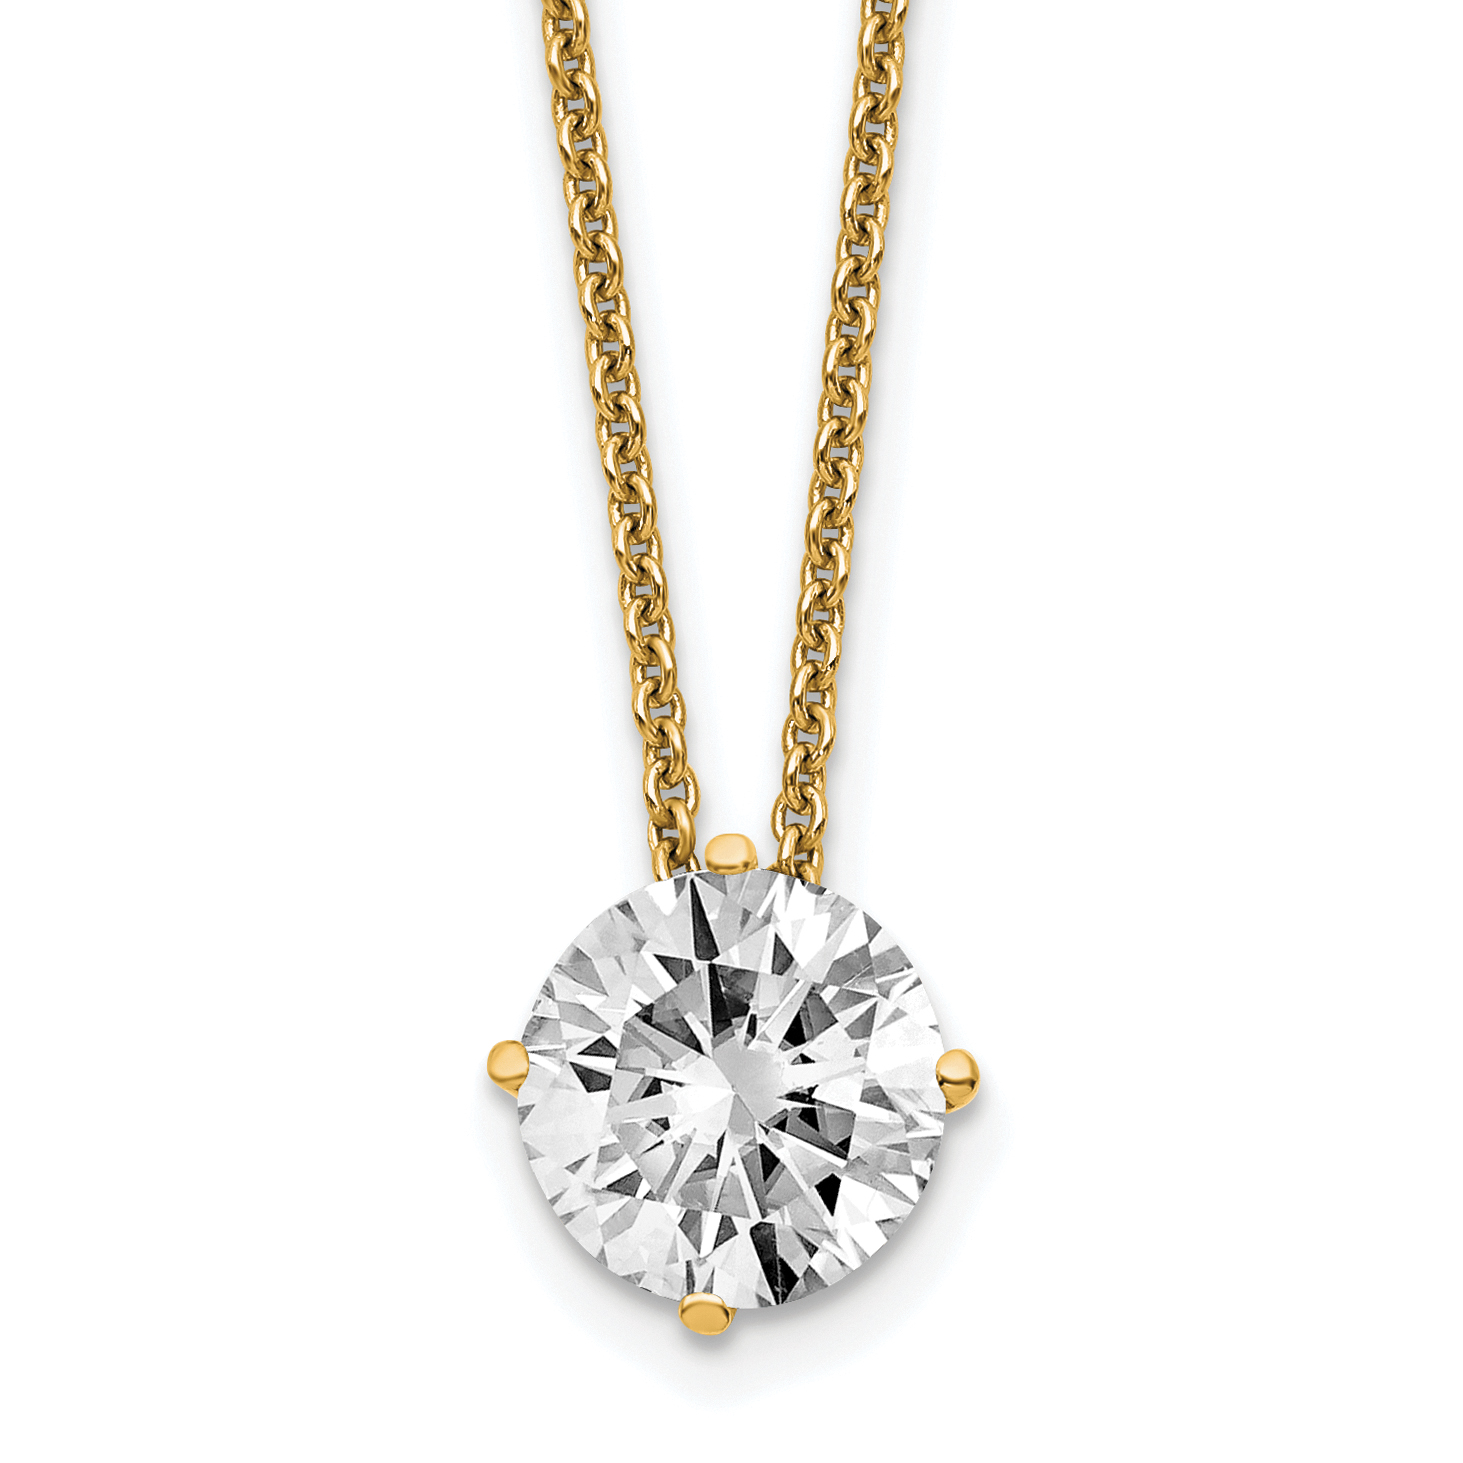 g ghi moissanite in floating one colorless brilliant heart necklace ctw gold f white chain near forever